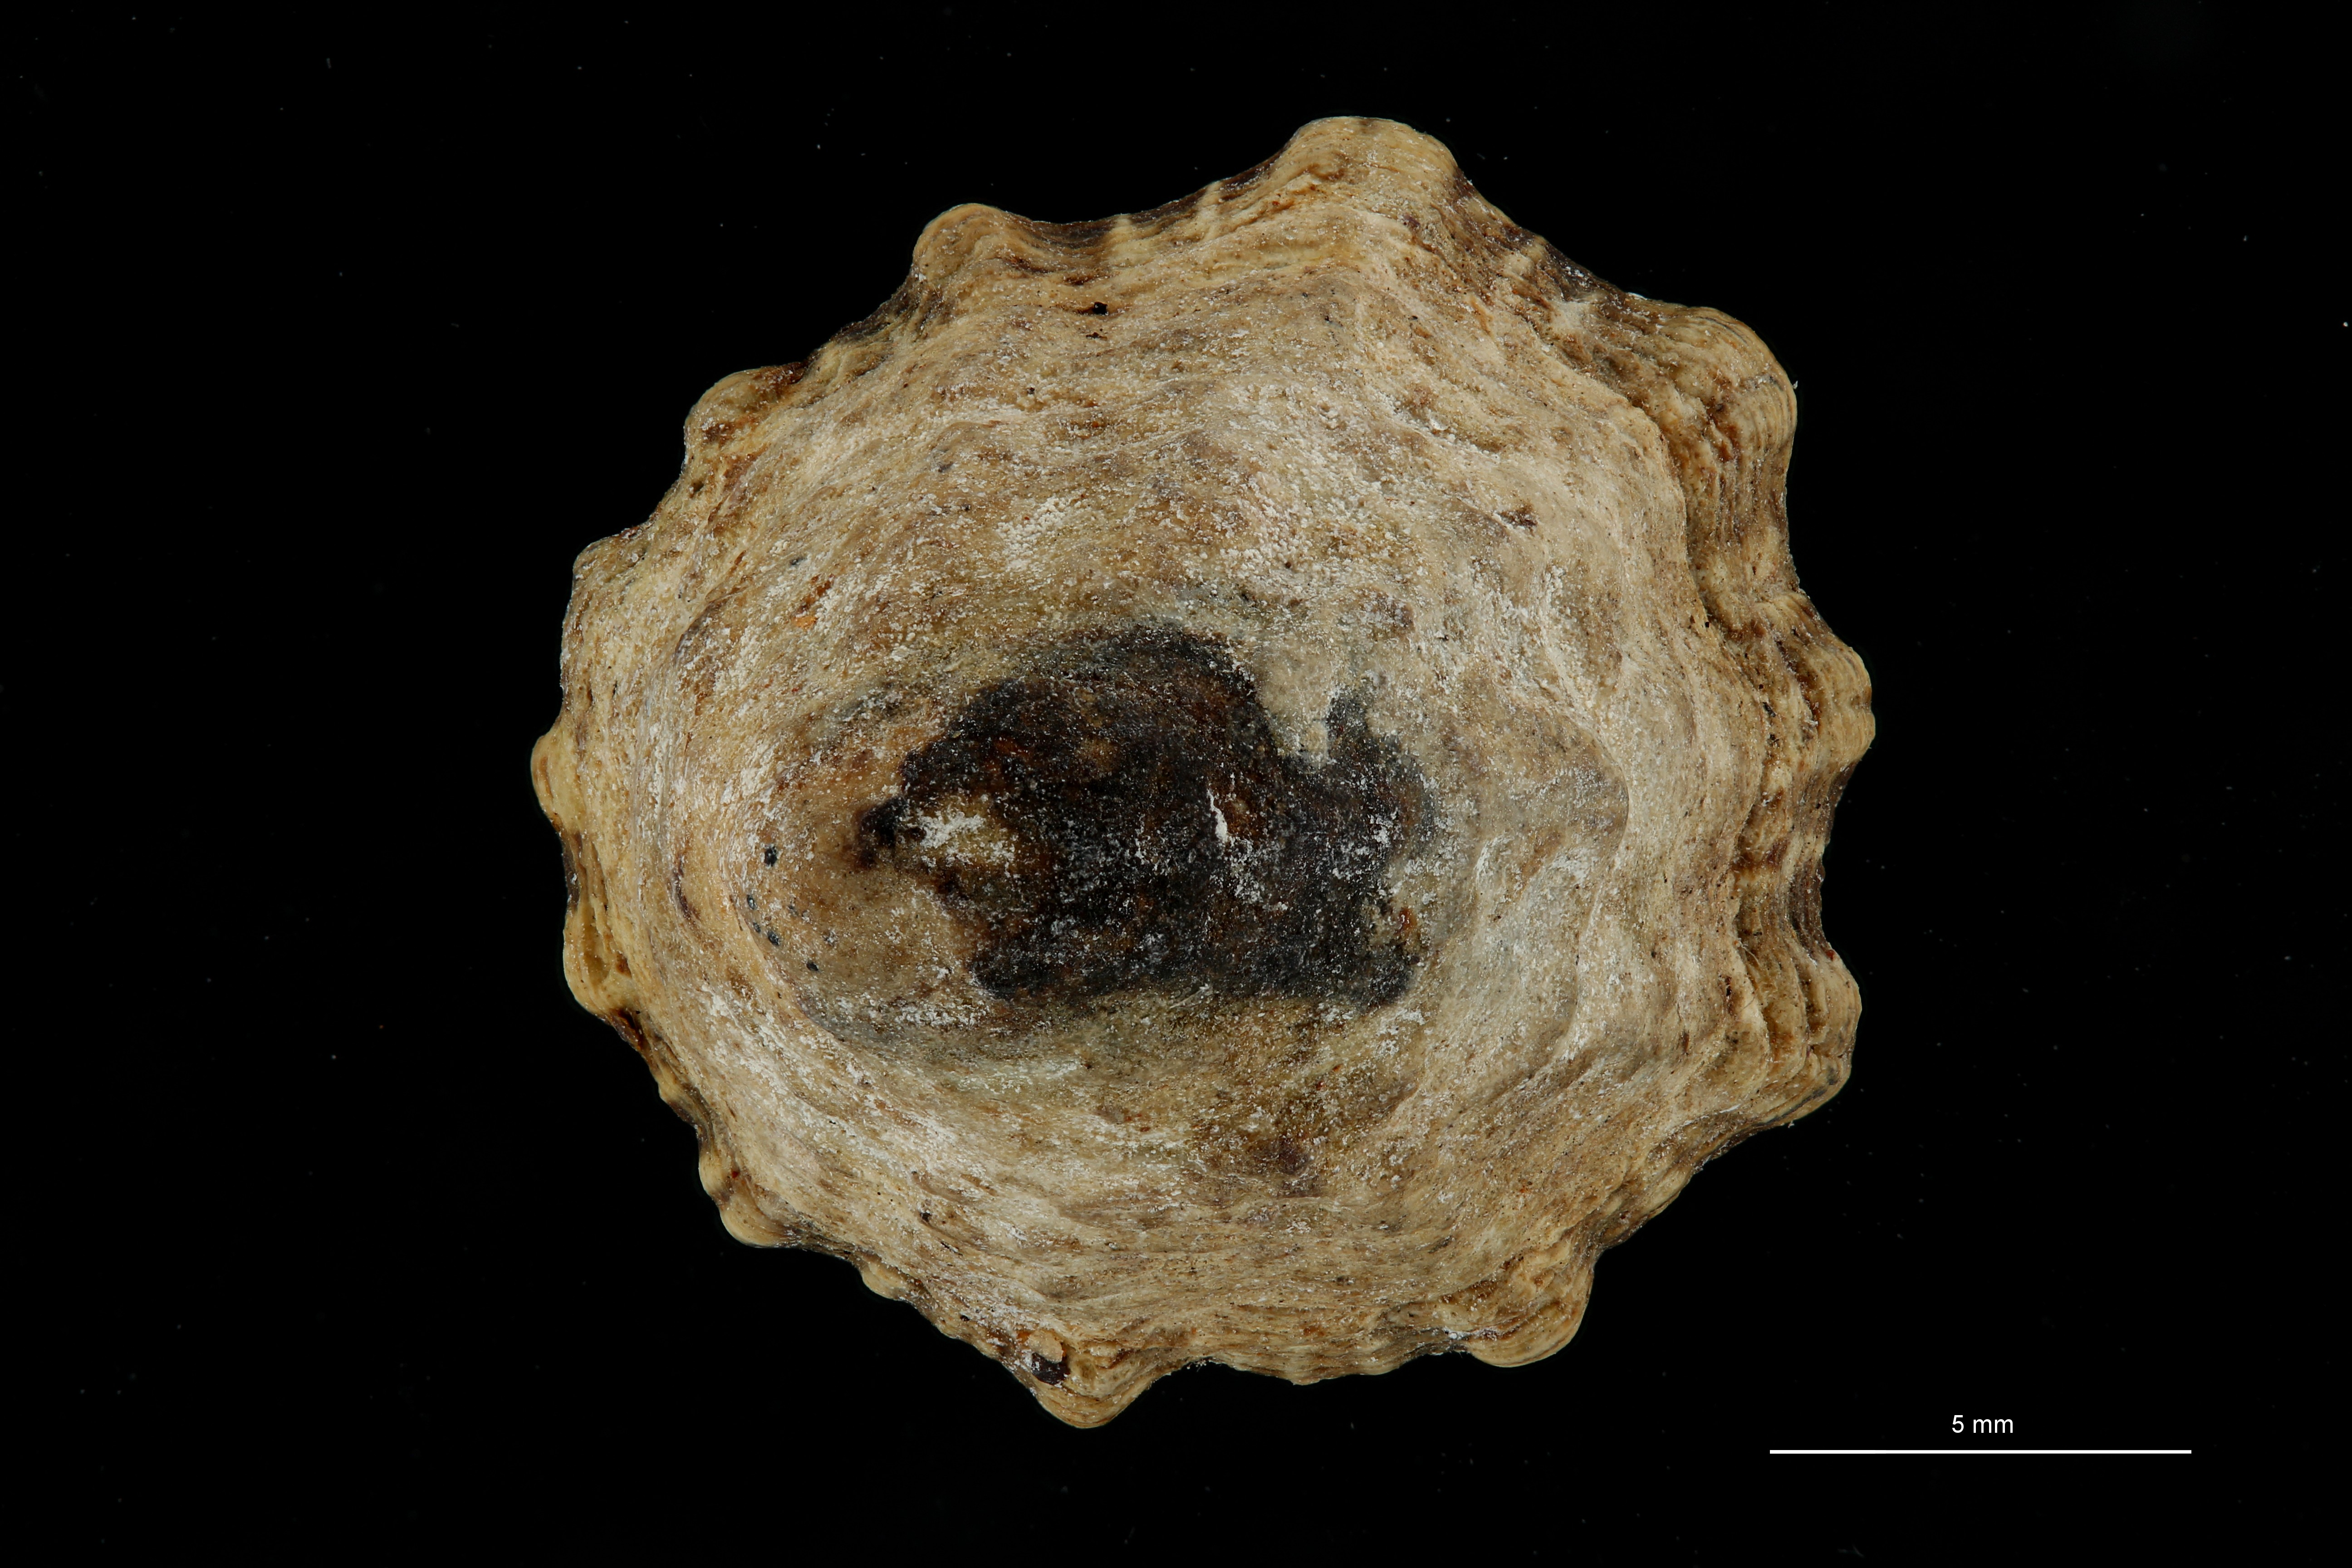 BE-RBINS-INV MT 8 Acmaea perconica HOLOTYPE DORSAL ZS DMap Scaled.jpg